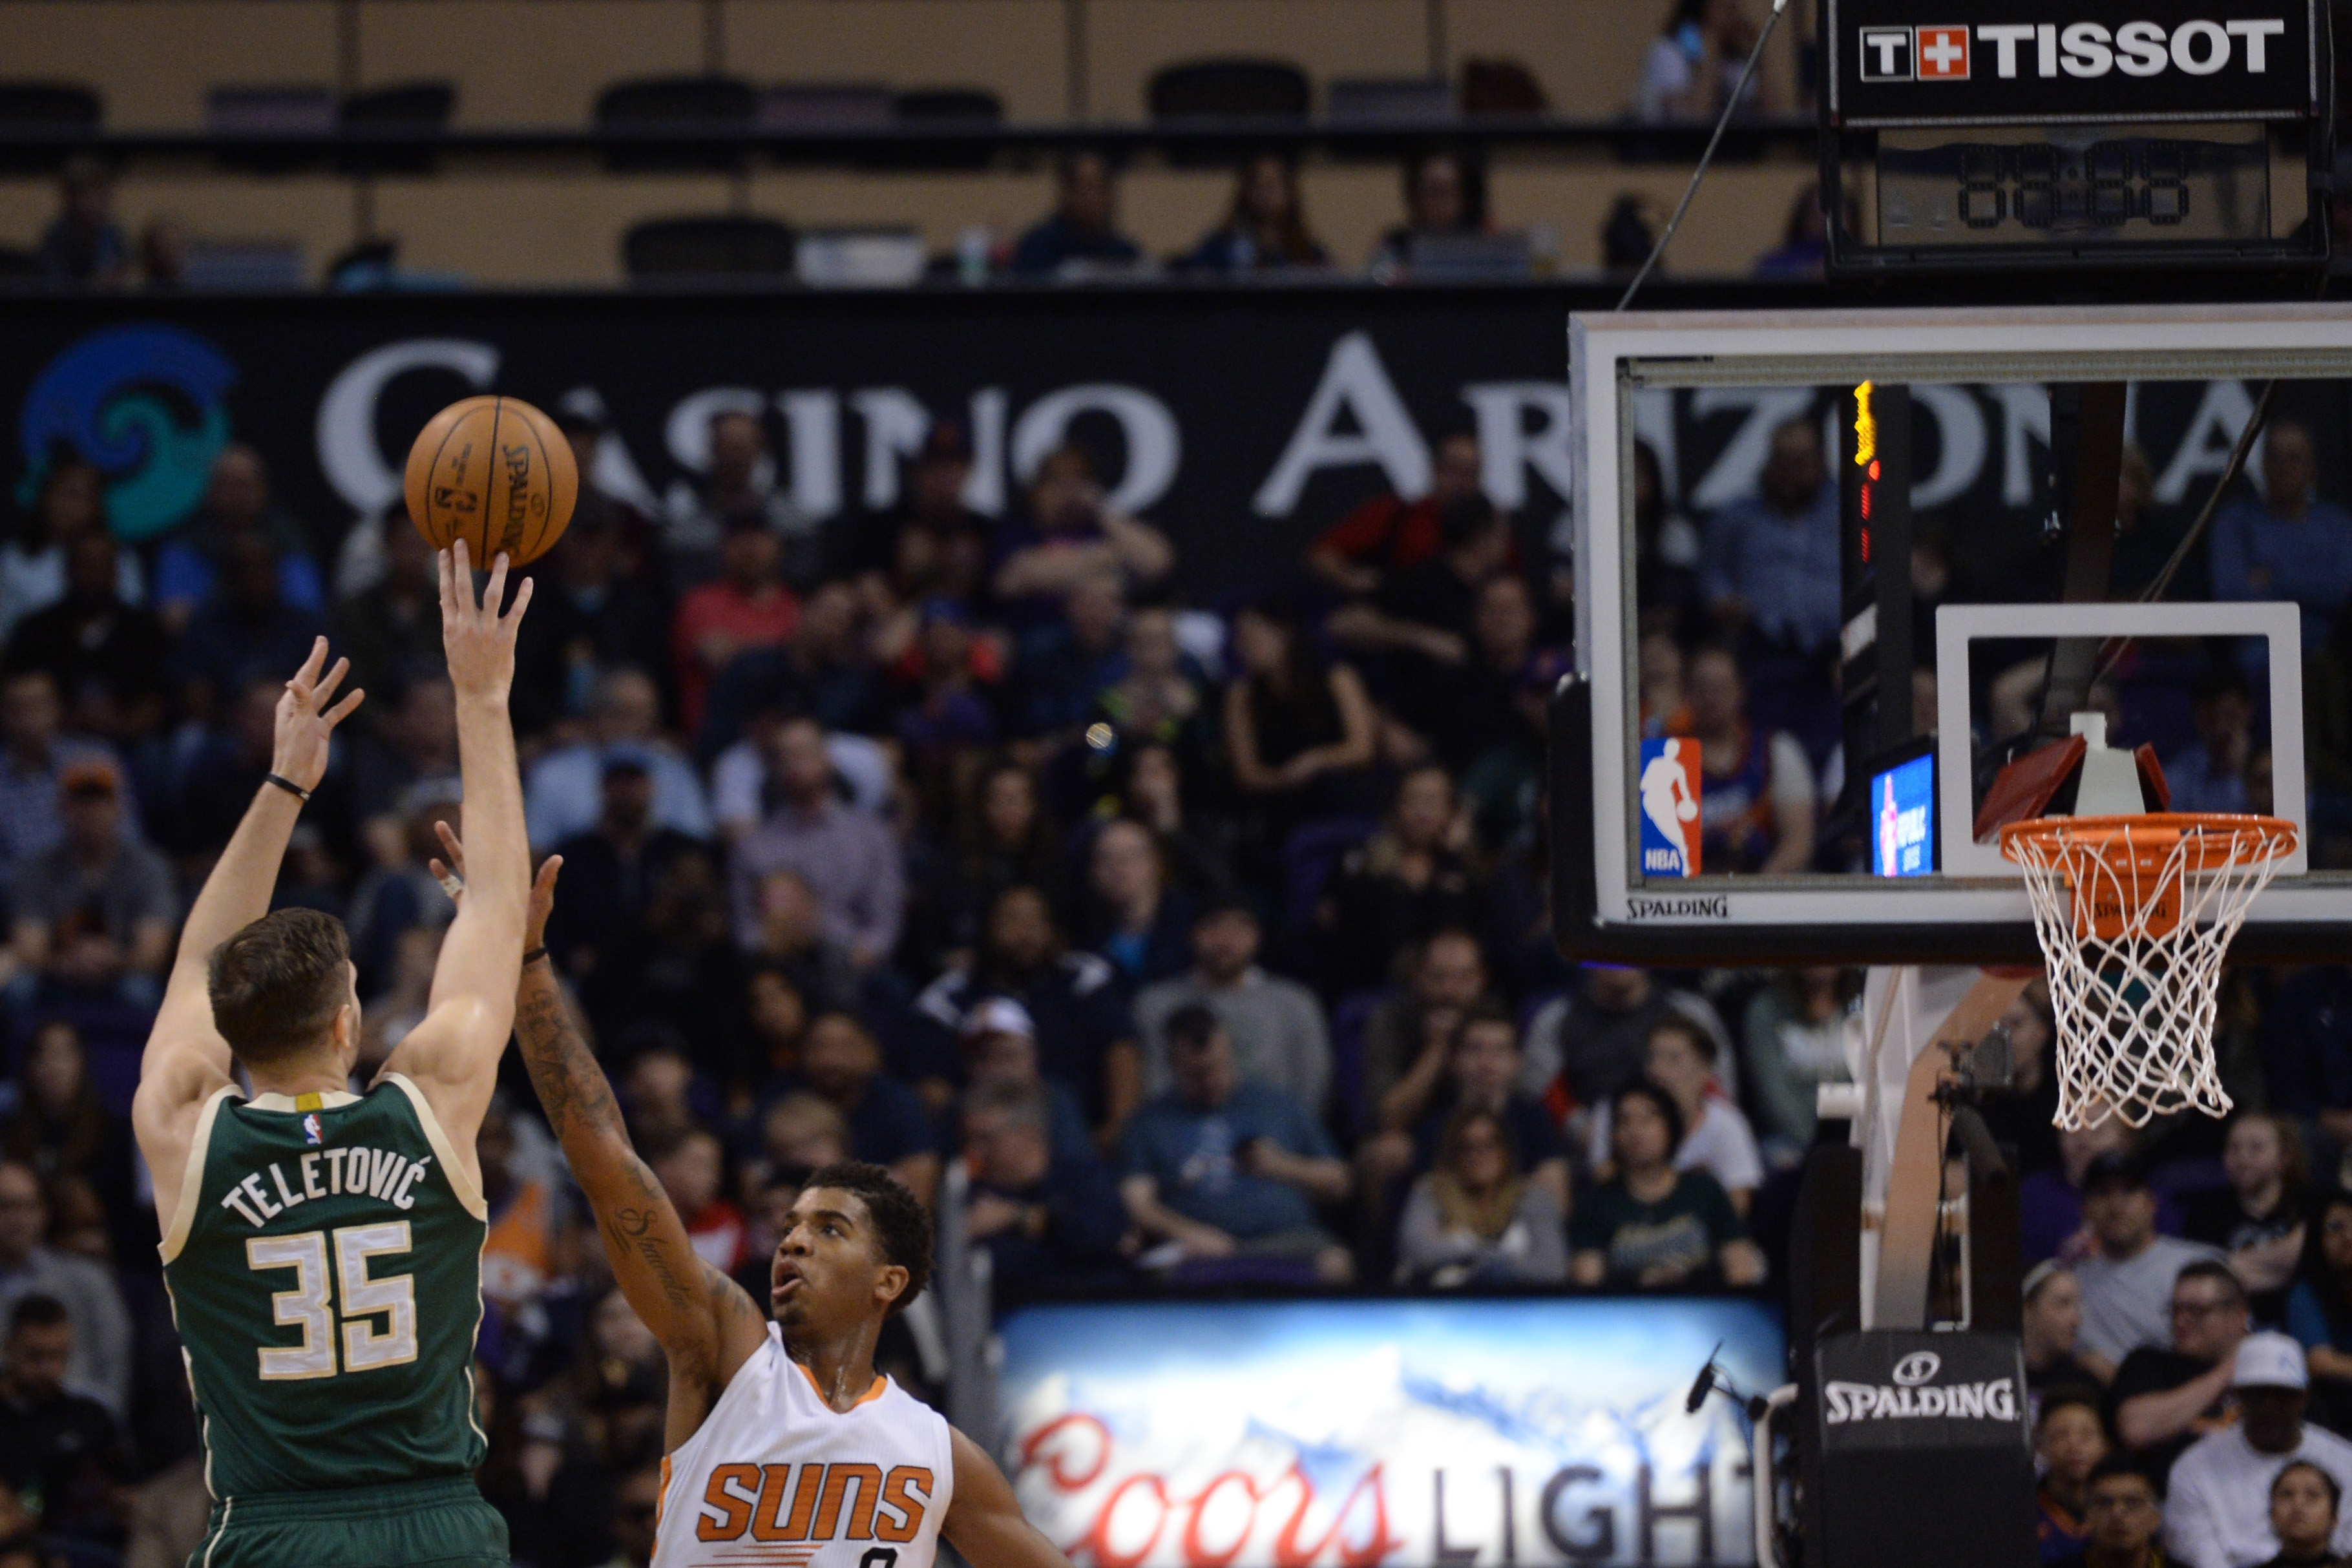 Feb 4, 2017; Phoenix, AZ, USA; Milwaukee Bucks forward Mirza Teletovic (35) shoots over Phoenix Suns forward Marquese Chriss (0) during the second half at Talking Stick Resort Arena. The Bucks won 137-112. Mandatory Credit: Joe Camporeale-USA TODAY Sports